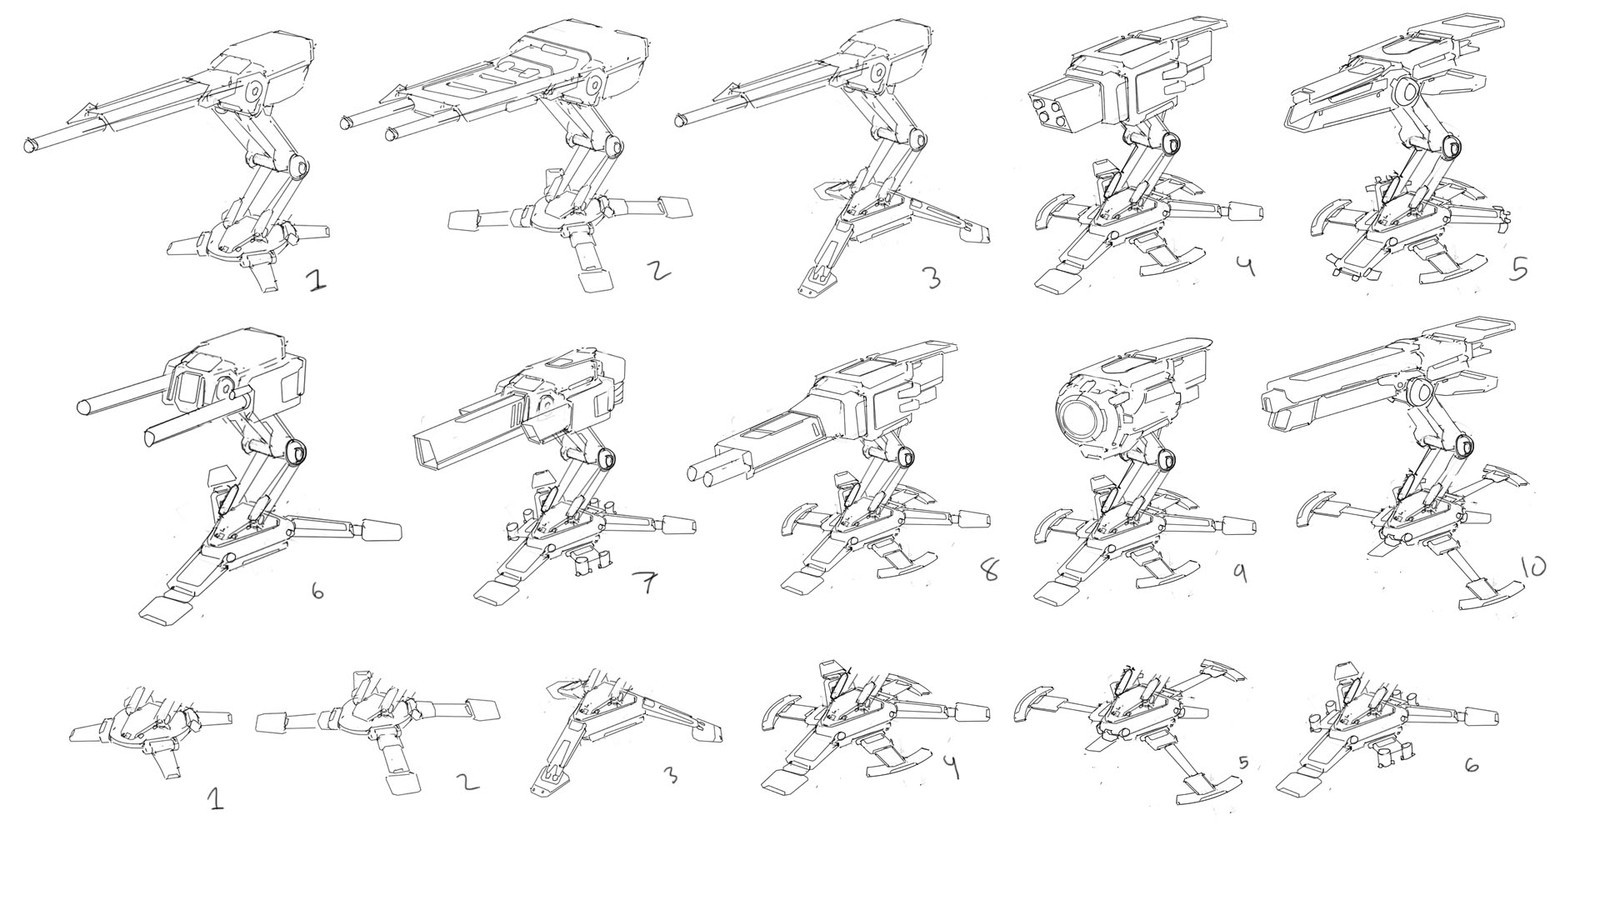 Early turret thumbnails